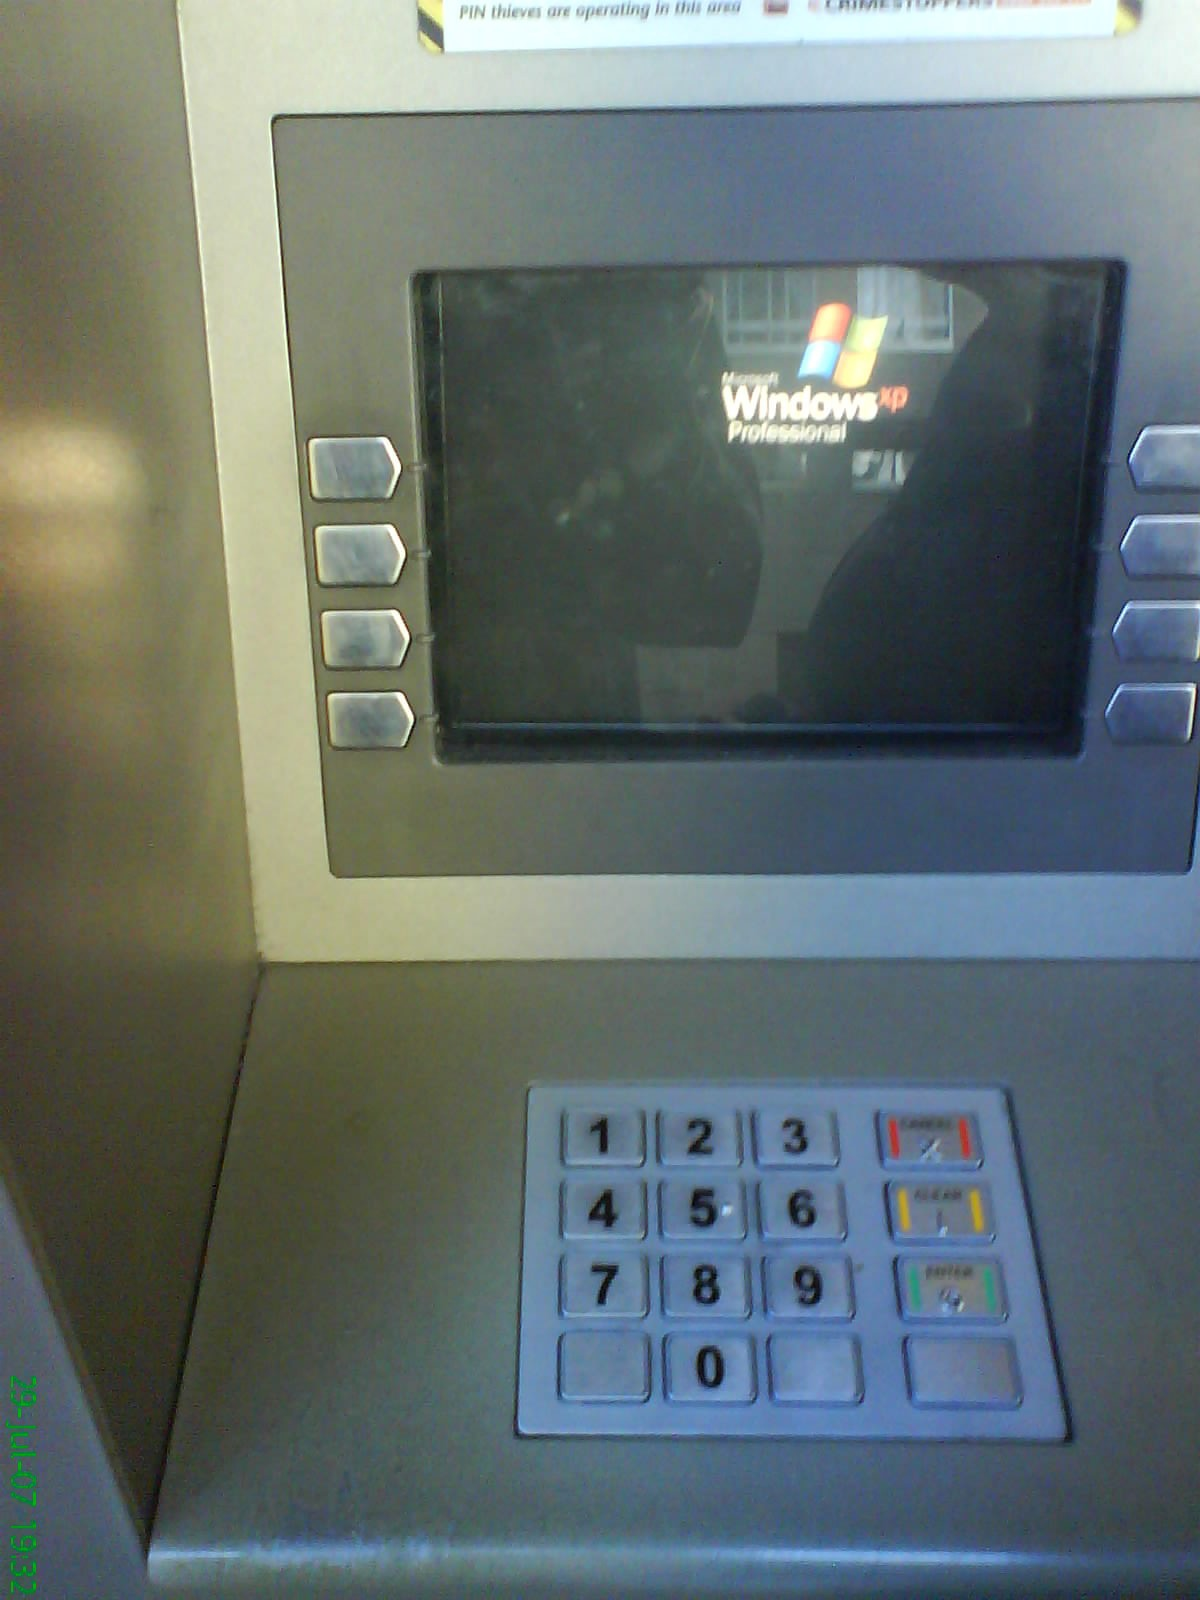 /do-atms-running-windows-xp-pose-a-security-risk-you-can-bank-on-it-1b7817902d61 feature image